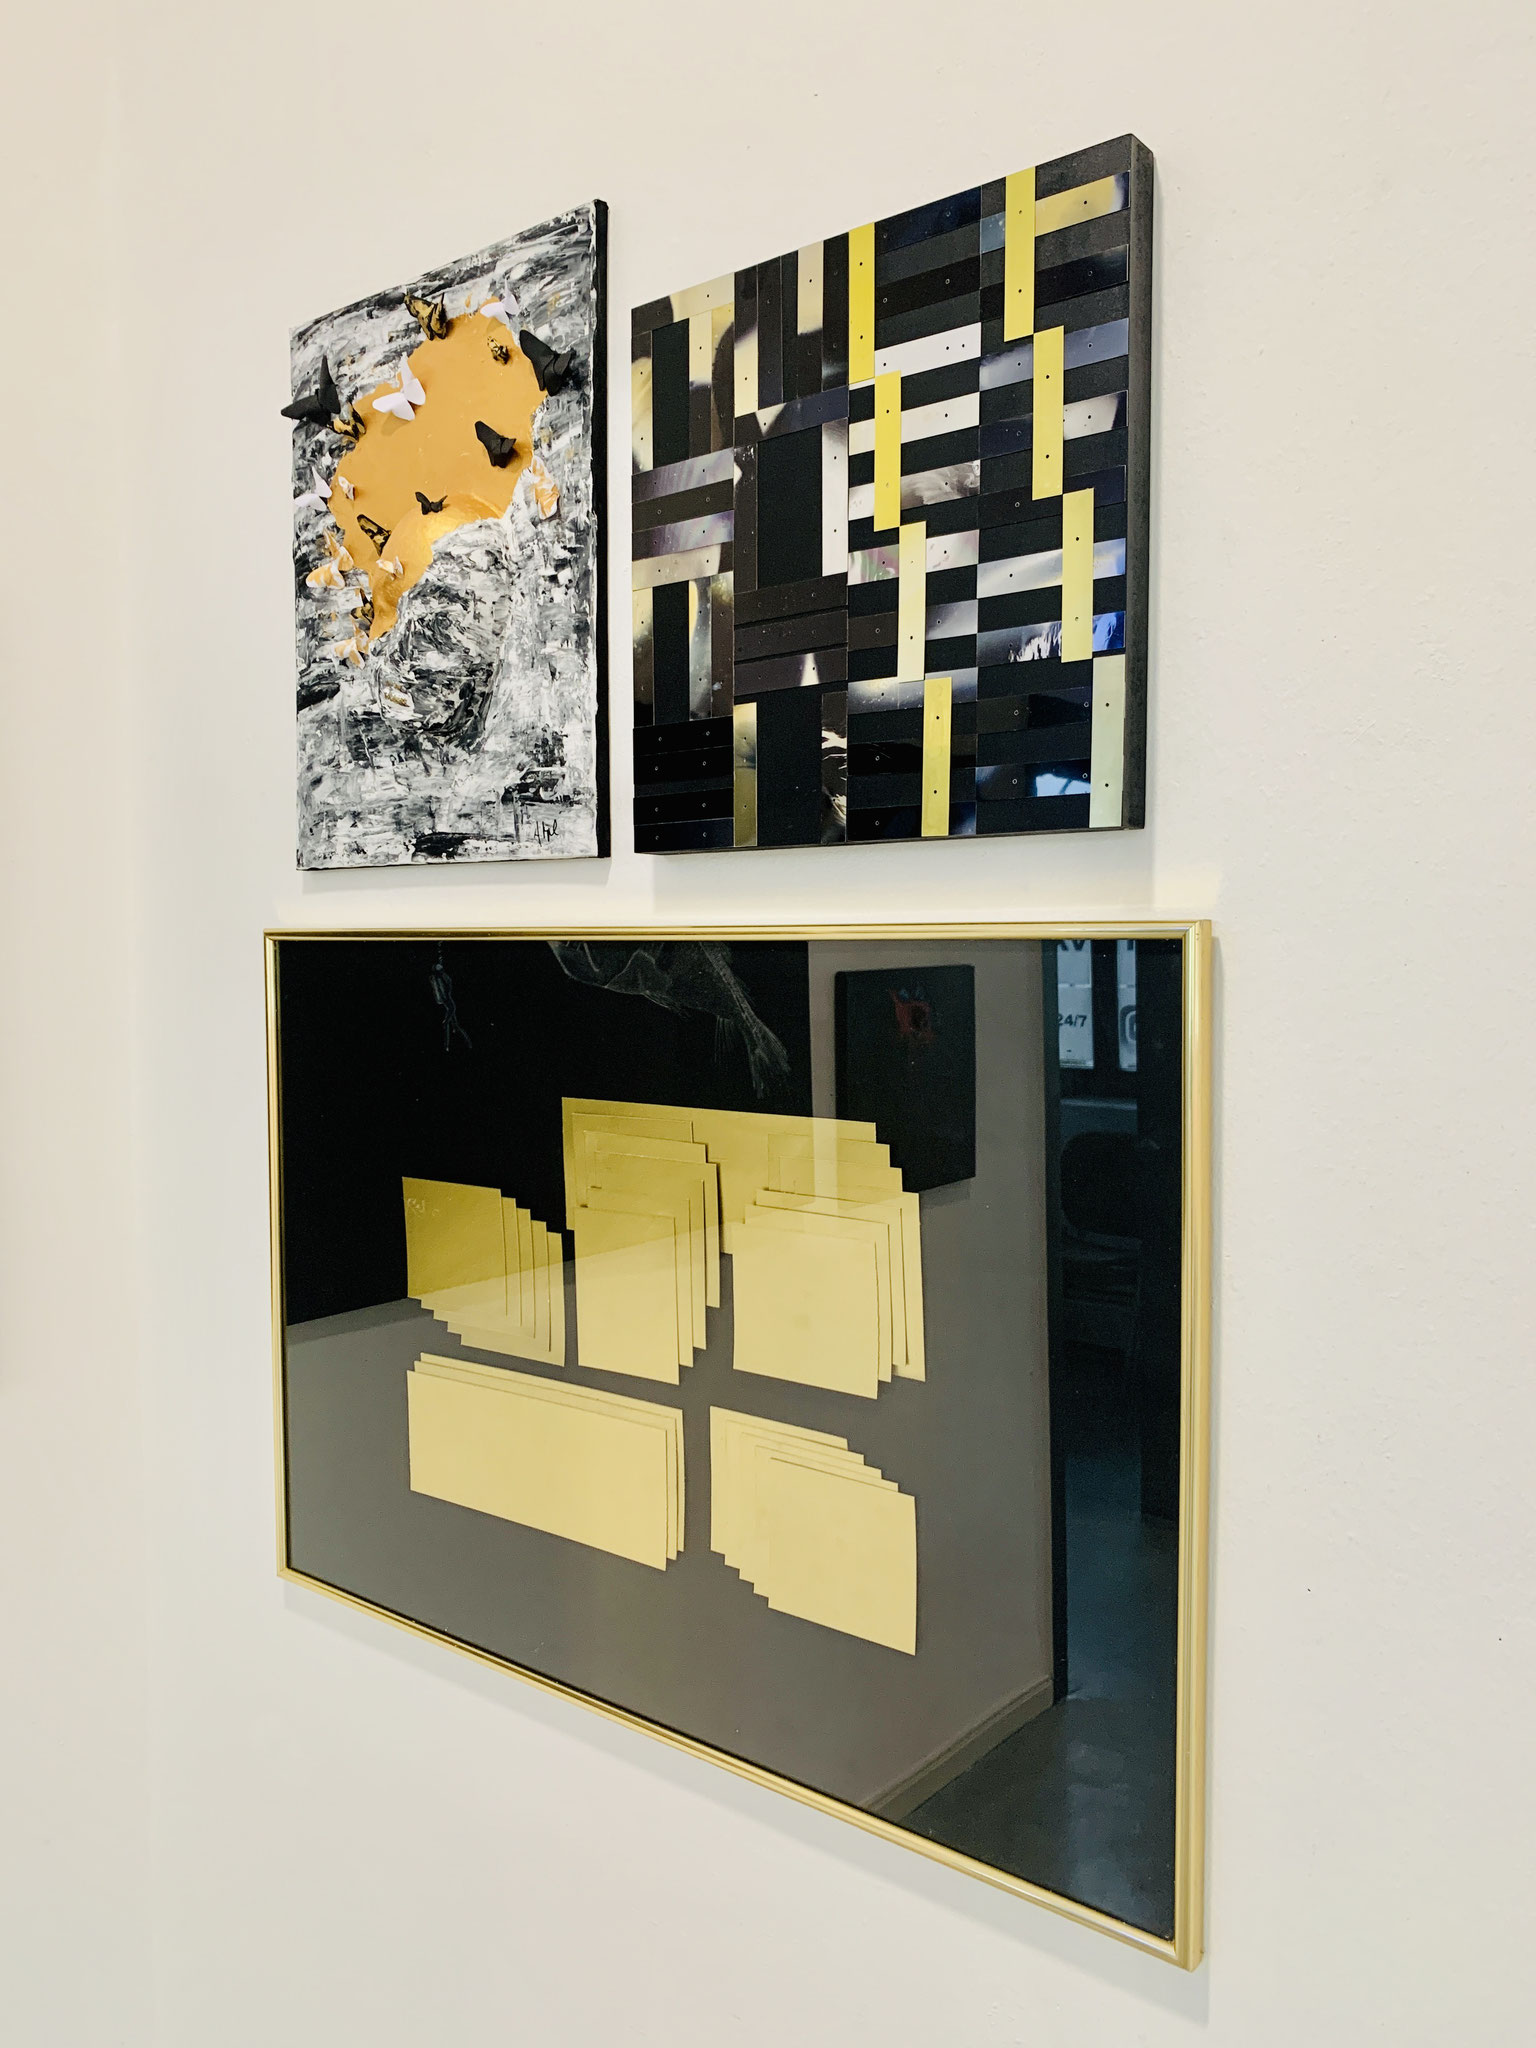 "o.l.: Anna Happel (Augustinerschule, 9. Klasse), YOU ARE GOLDEN; o.r.:Rosemarie Alder, ""factory-art"" (in Zusammenarbeit mit Fawad Khawar), Acceptance of the dark side, Collage aus Metallplättchen auf Holz, 2020; unten: Rosemarie Alder, ""factory-art"""